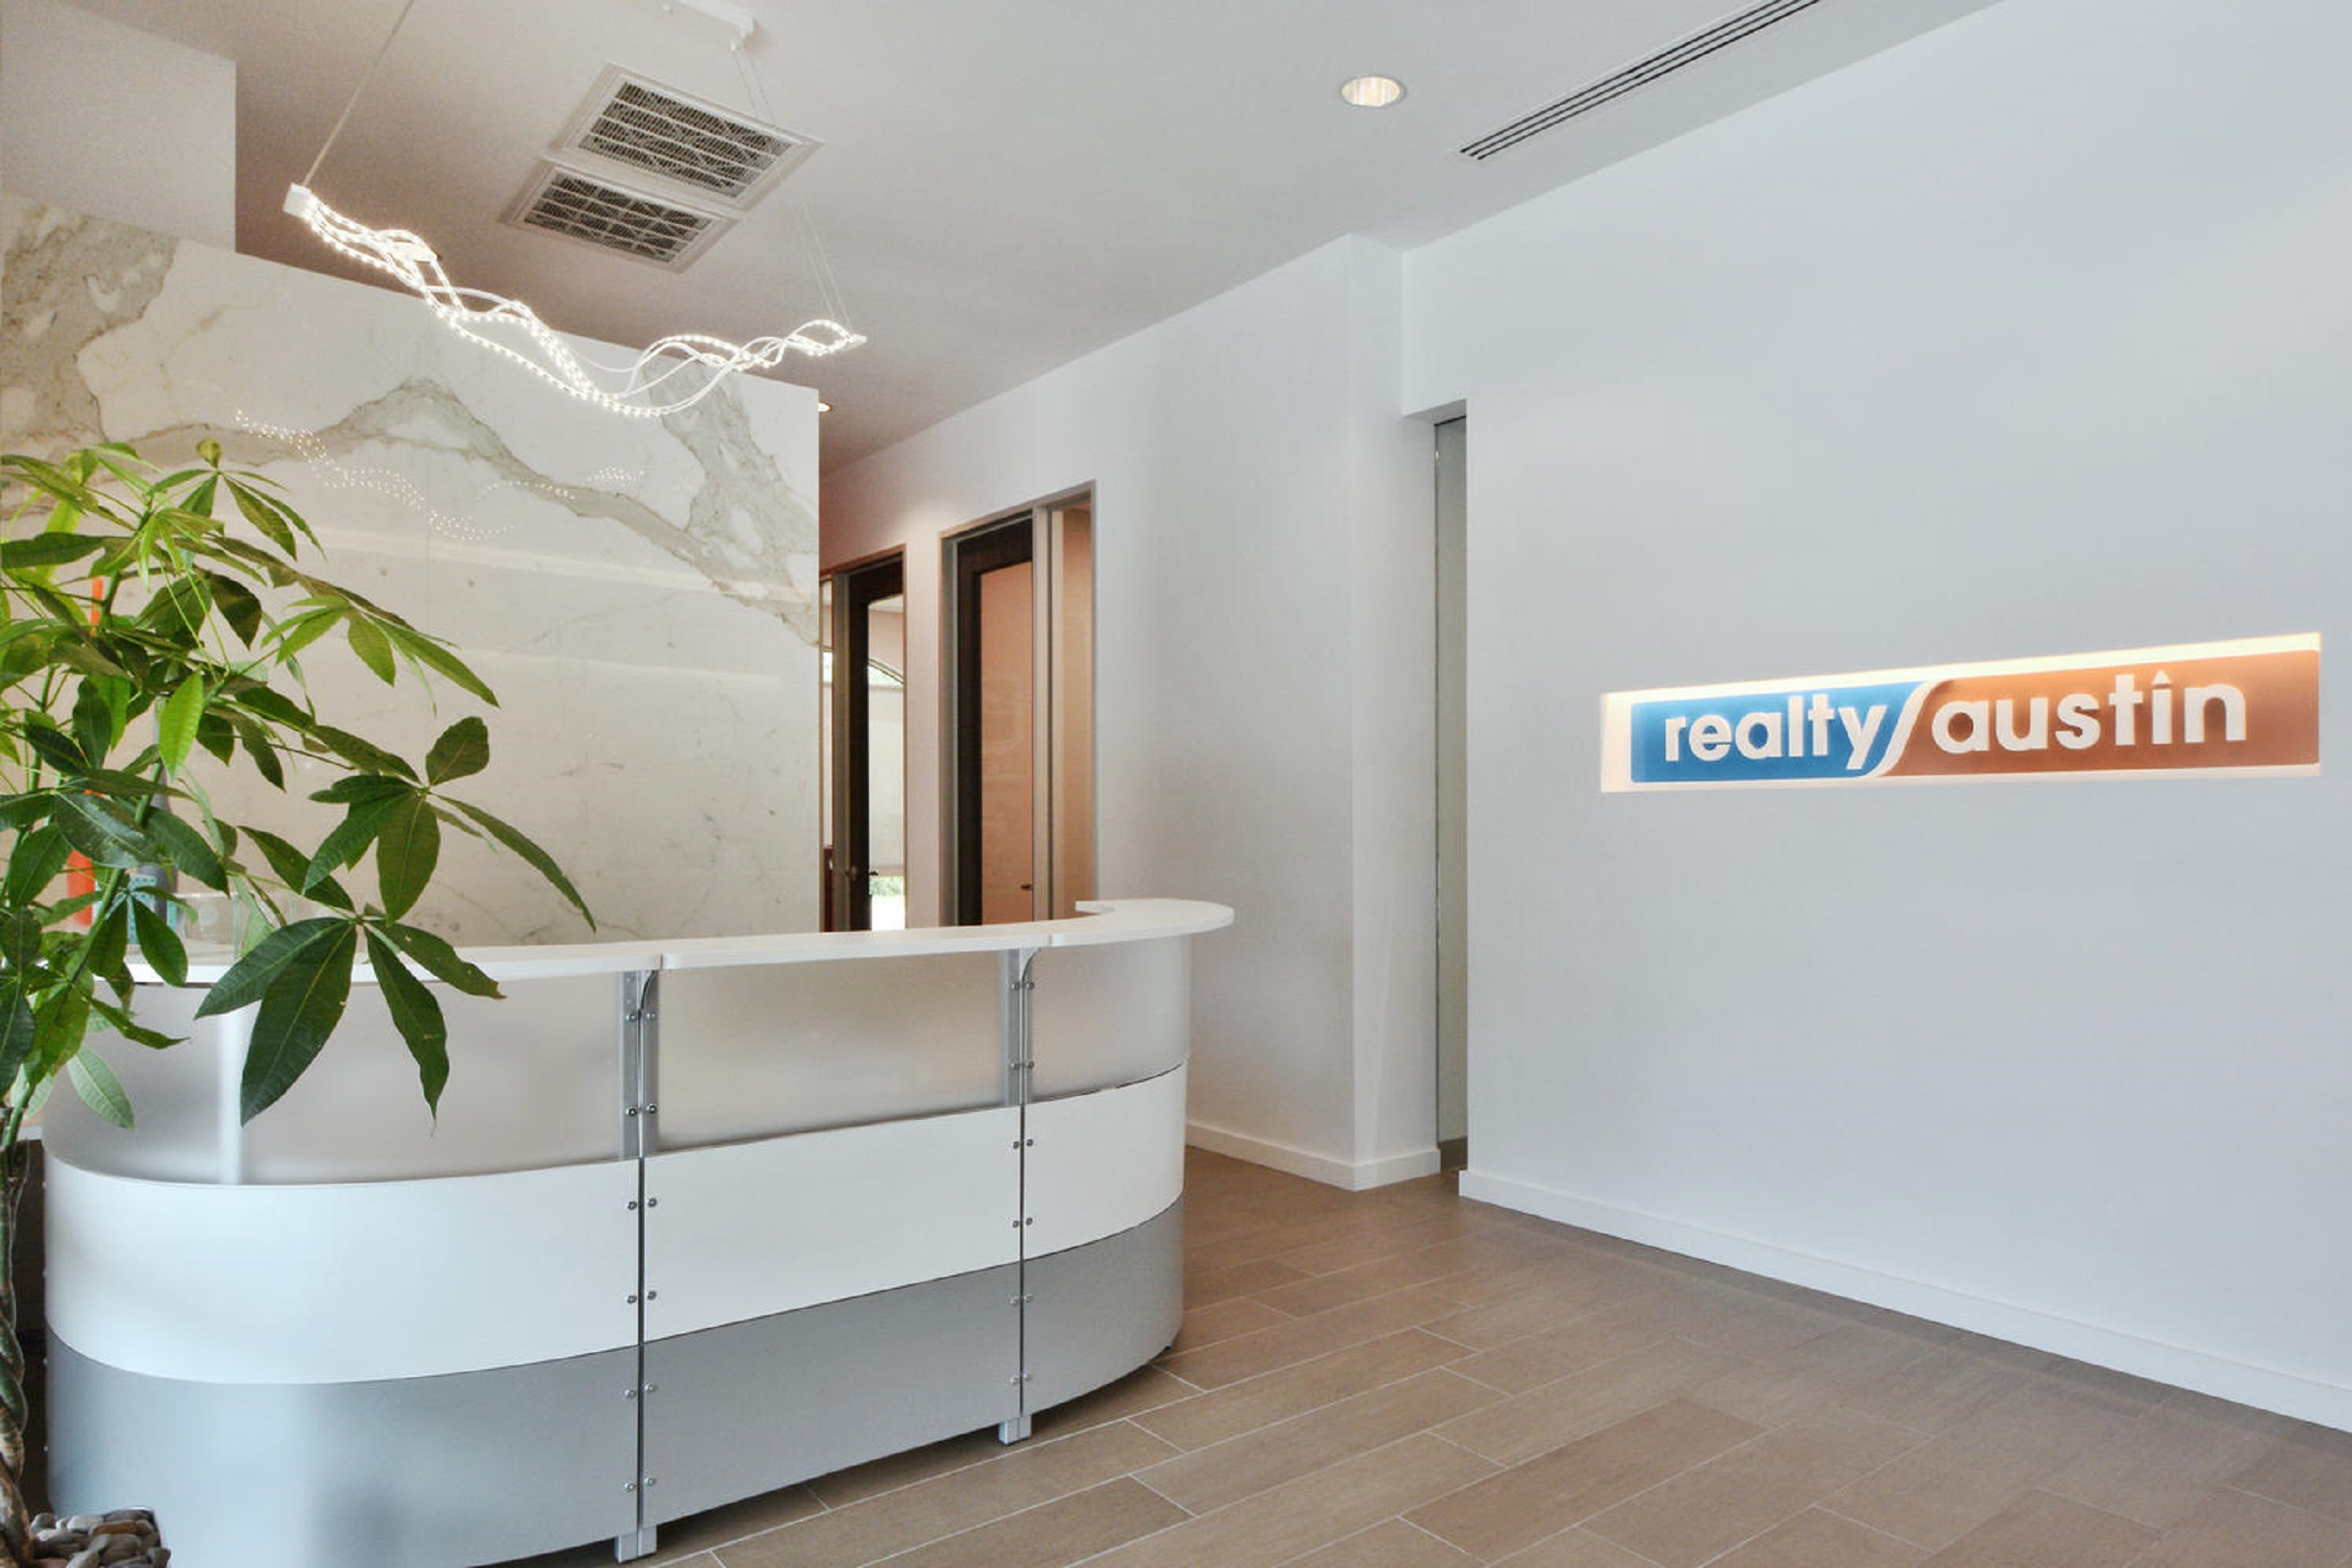 realty-austin-reception